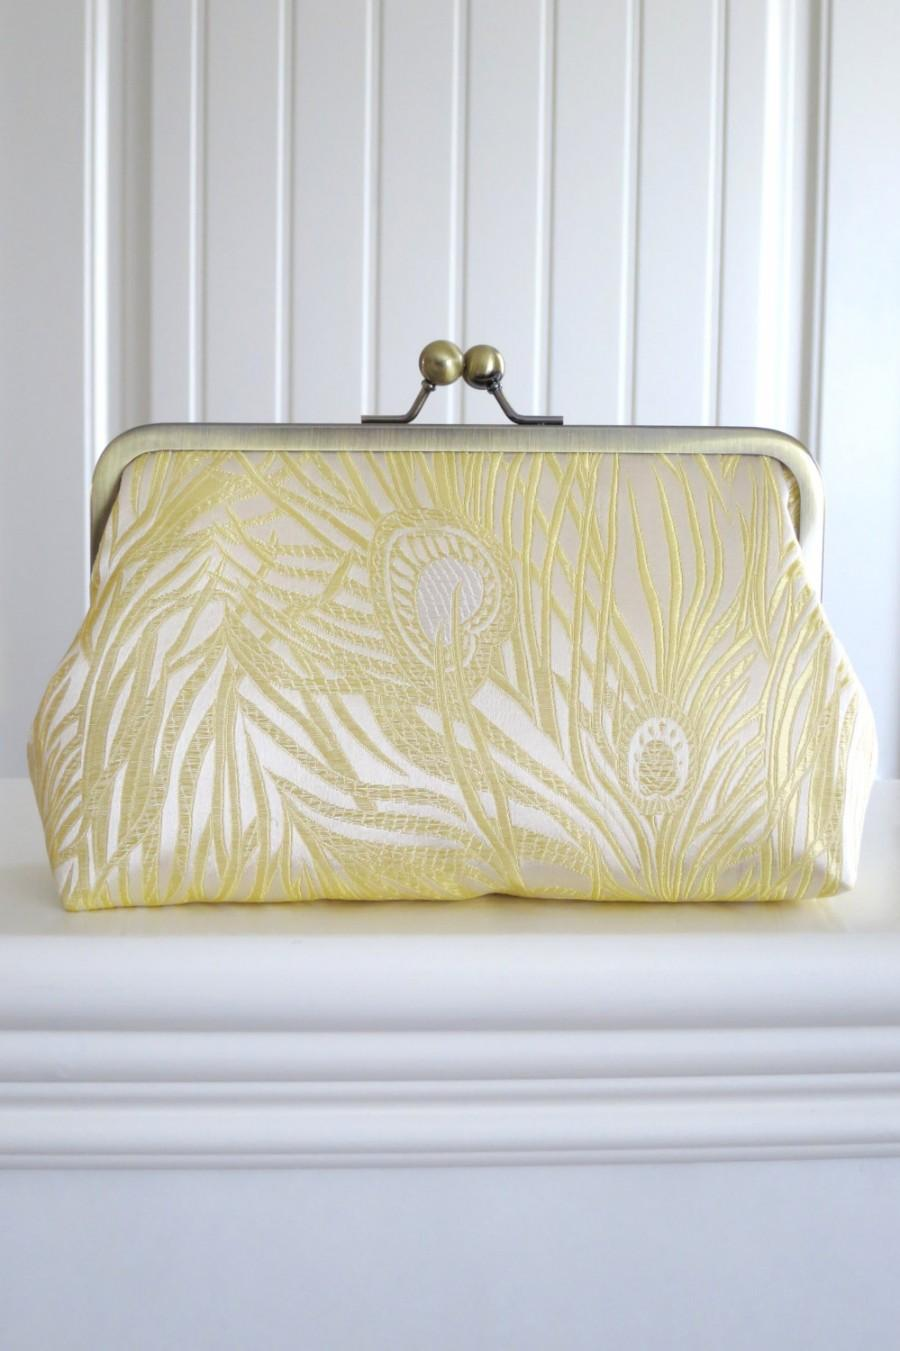 Mariage - SALE Iridescent Peacock Clutch in Ivory Brocade,Bridal Accessories,Bride Clutch,Bridesmaid Clutch,Holiday Clutch